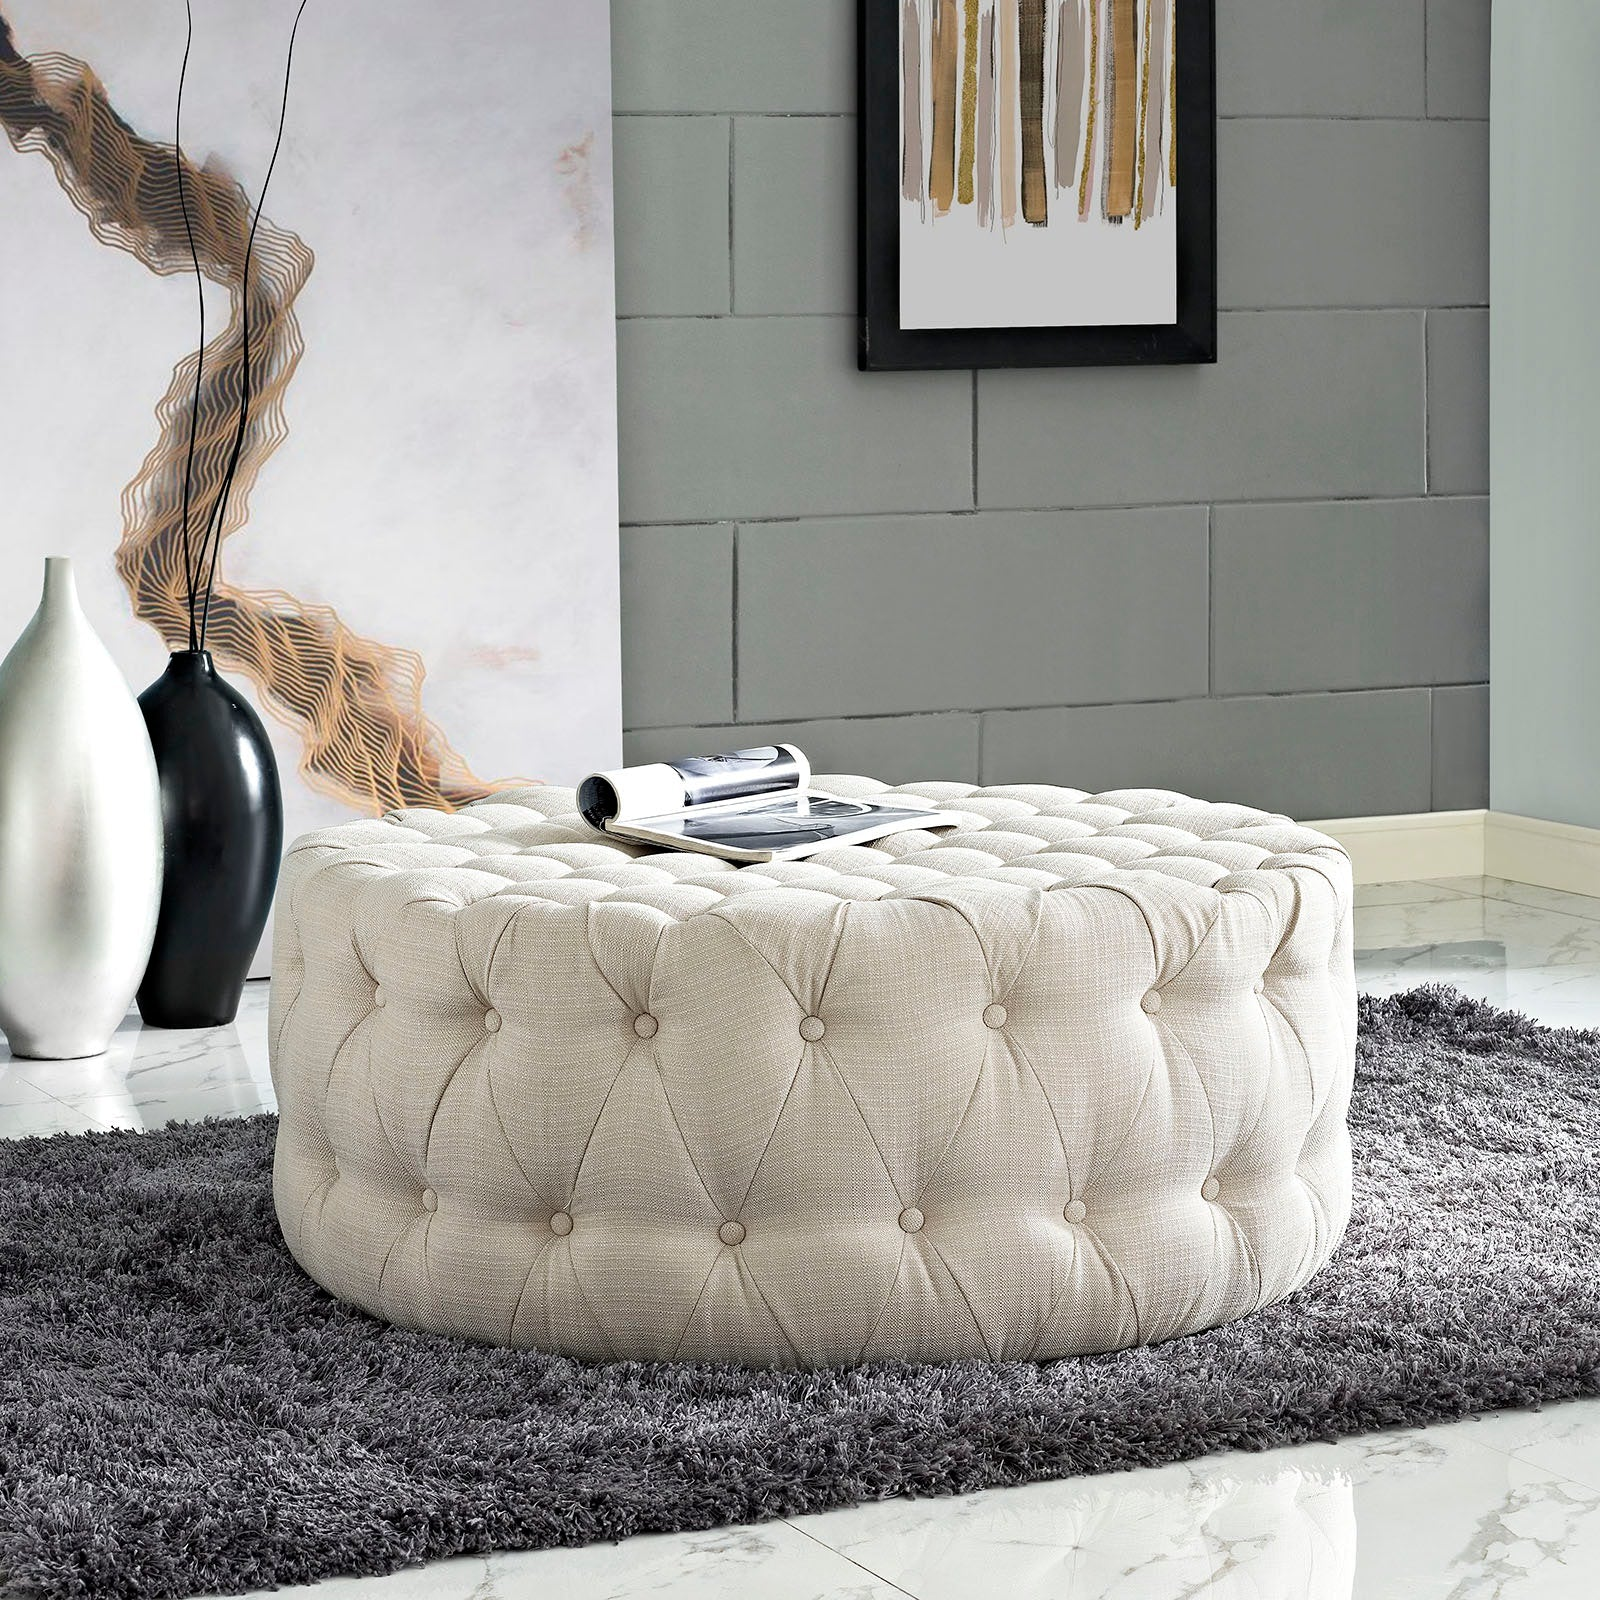 Amour Upholstered Fabric Ottoman - Beige